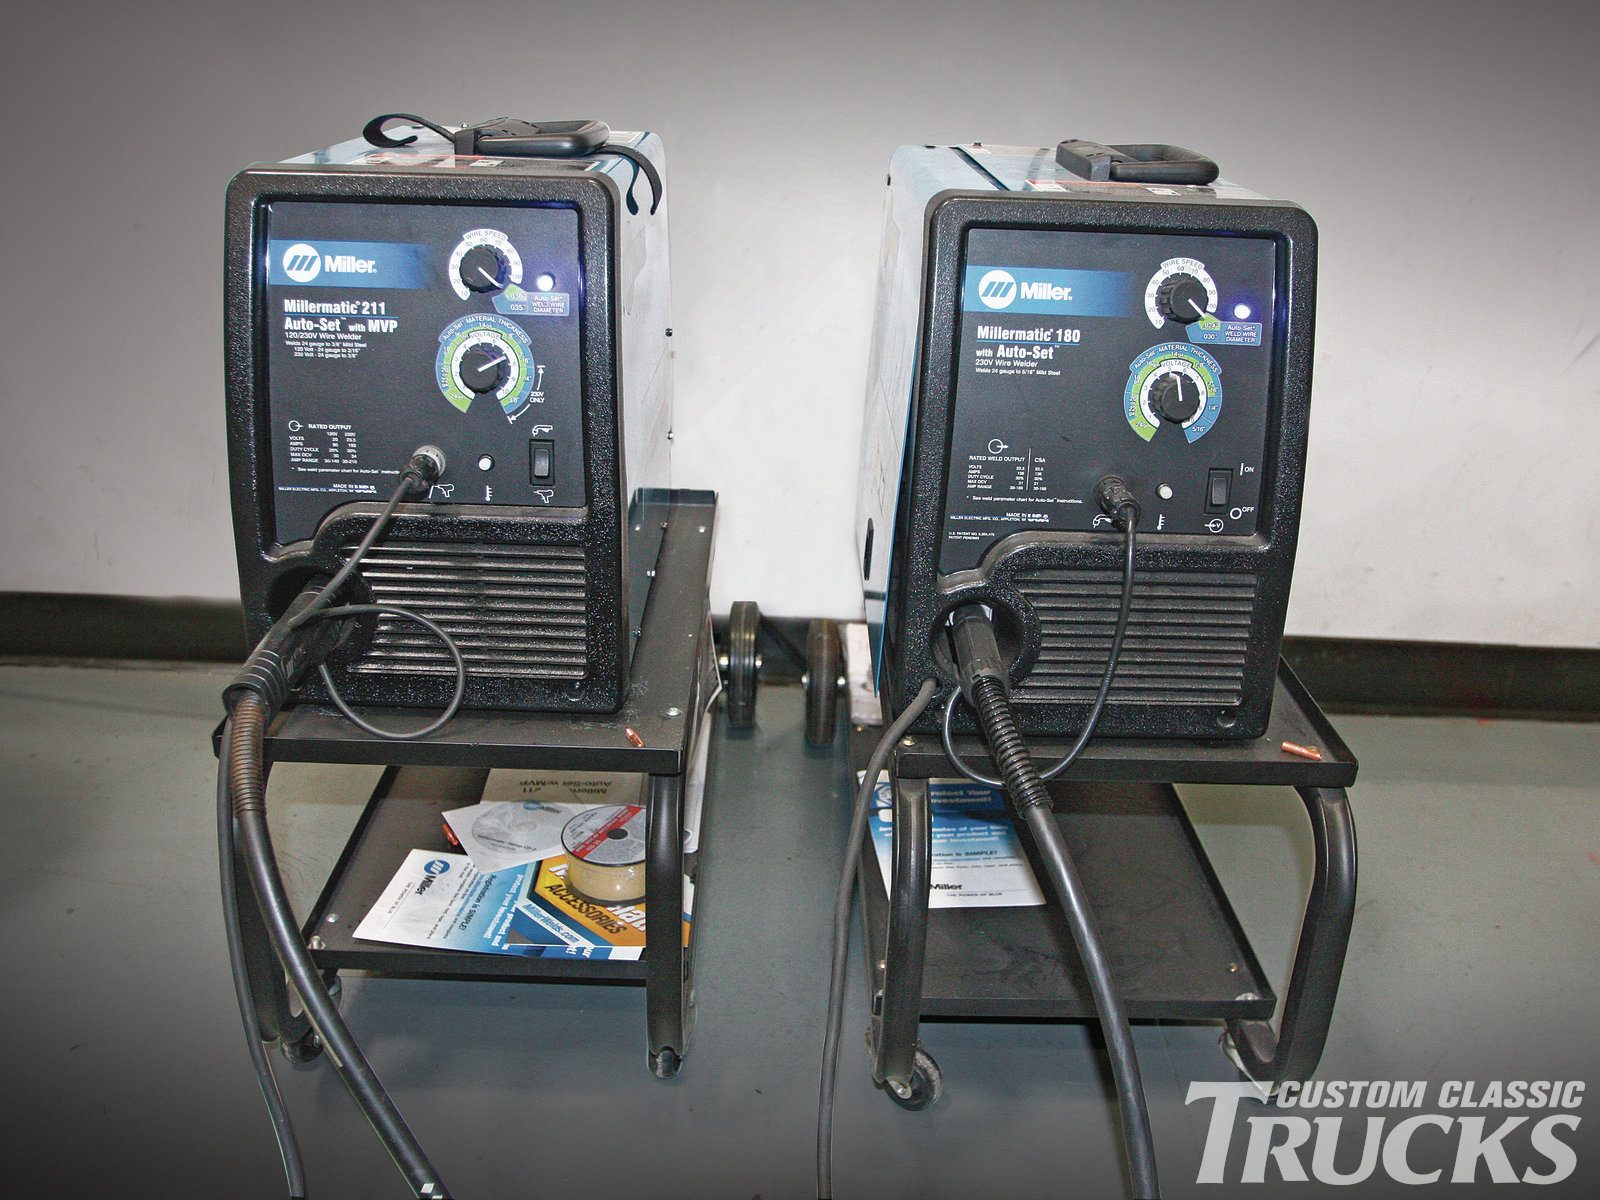 1. Here are two of Miller's latest MIG welders, aimed at the DIY homebuilder, the Millermatic 180 and 211. Both welders are equipped with Miller's exclusive Auto-Set function that automatically determines the wire speed required by setting the material thickness to be welded and the welding wire diameter. This function takes most of the guesswork out of the equation when it comes to setting up a welder by the inexperienced. The 211 has another Miller exclusive, the MVP or multi-voltage plug function, which allows the welder to be powered by either 120- or 230-volt power receptacles by simply swapping the provided plug ends. For our exercise, we'll be using the 180 exclusively, given its broad range, from 24-gauge sheetmetal to 5⁄16-inch plate.